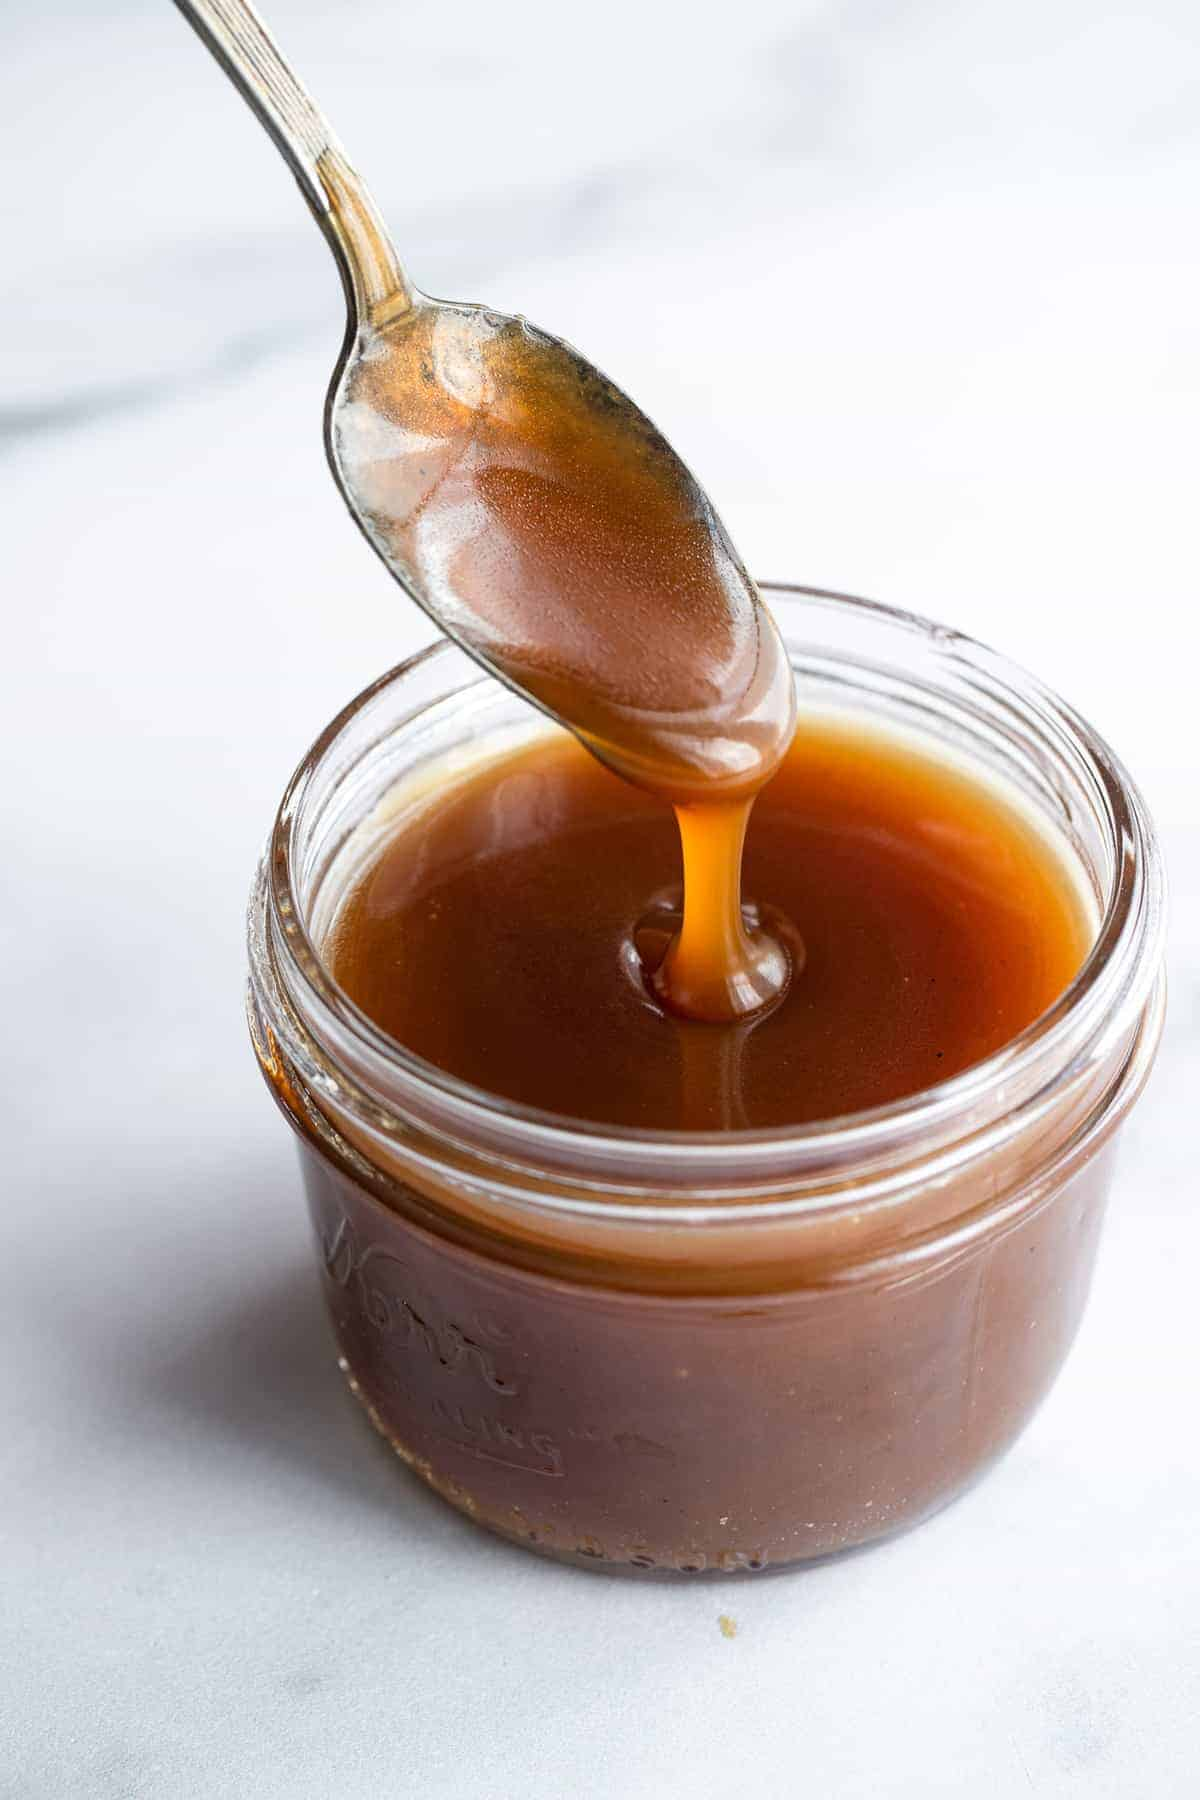 a spoon dipped in dairy free vegan caramel sauce